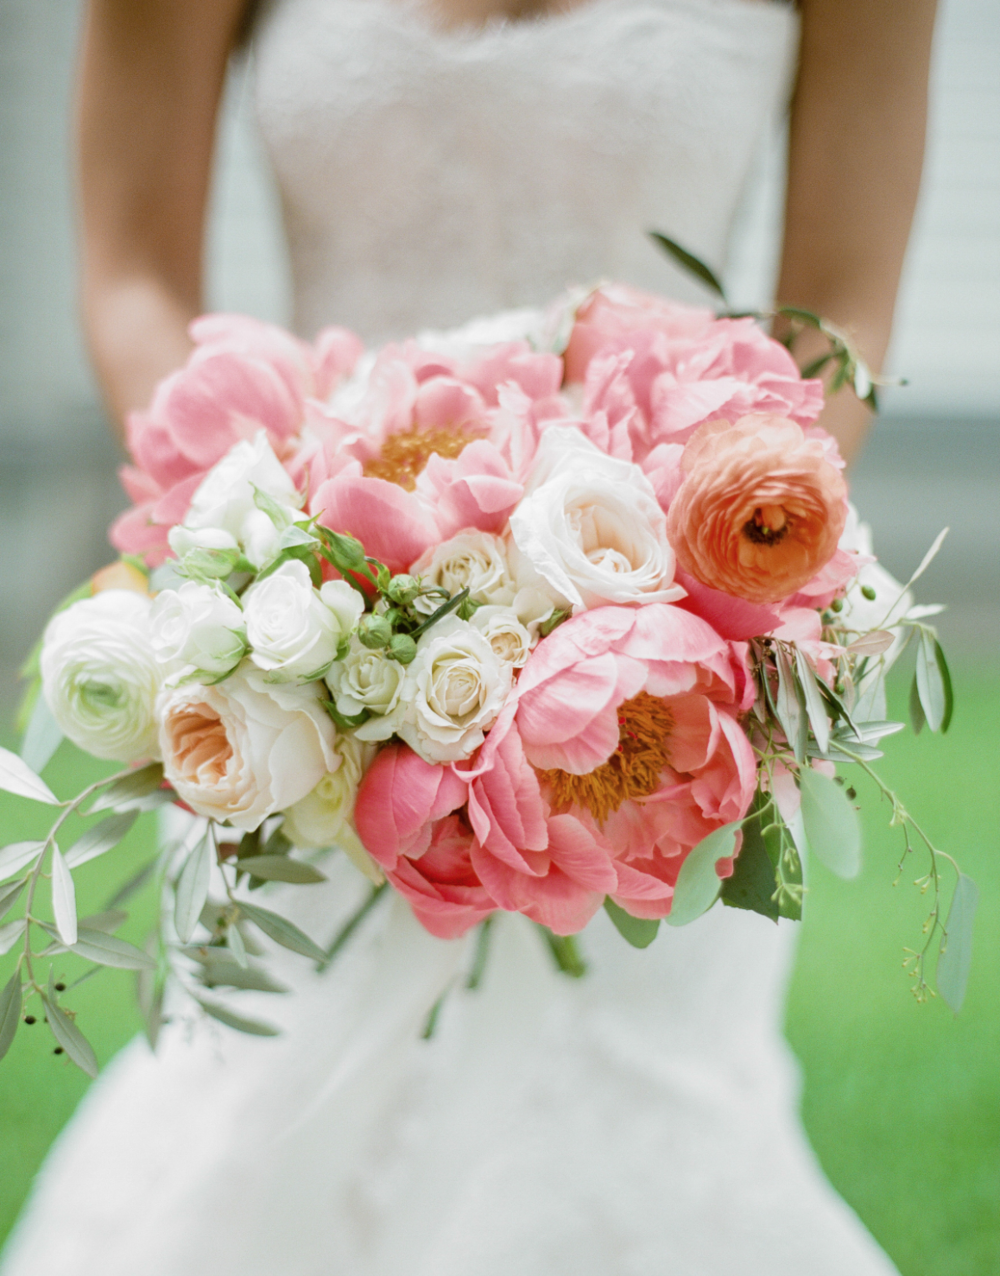 Bridal Bouquet with pink peonies, blush roses, ranunculus, greenery by Maxit Flower Design in Houston, TX